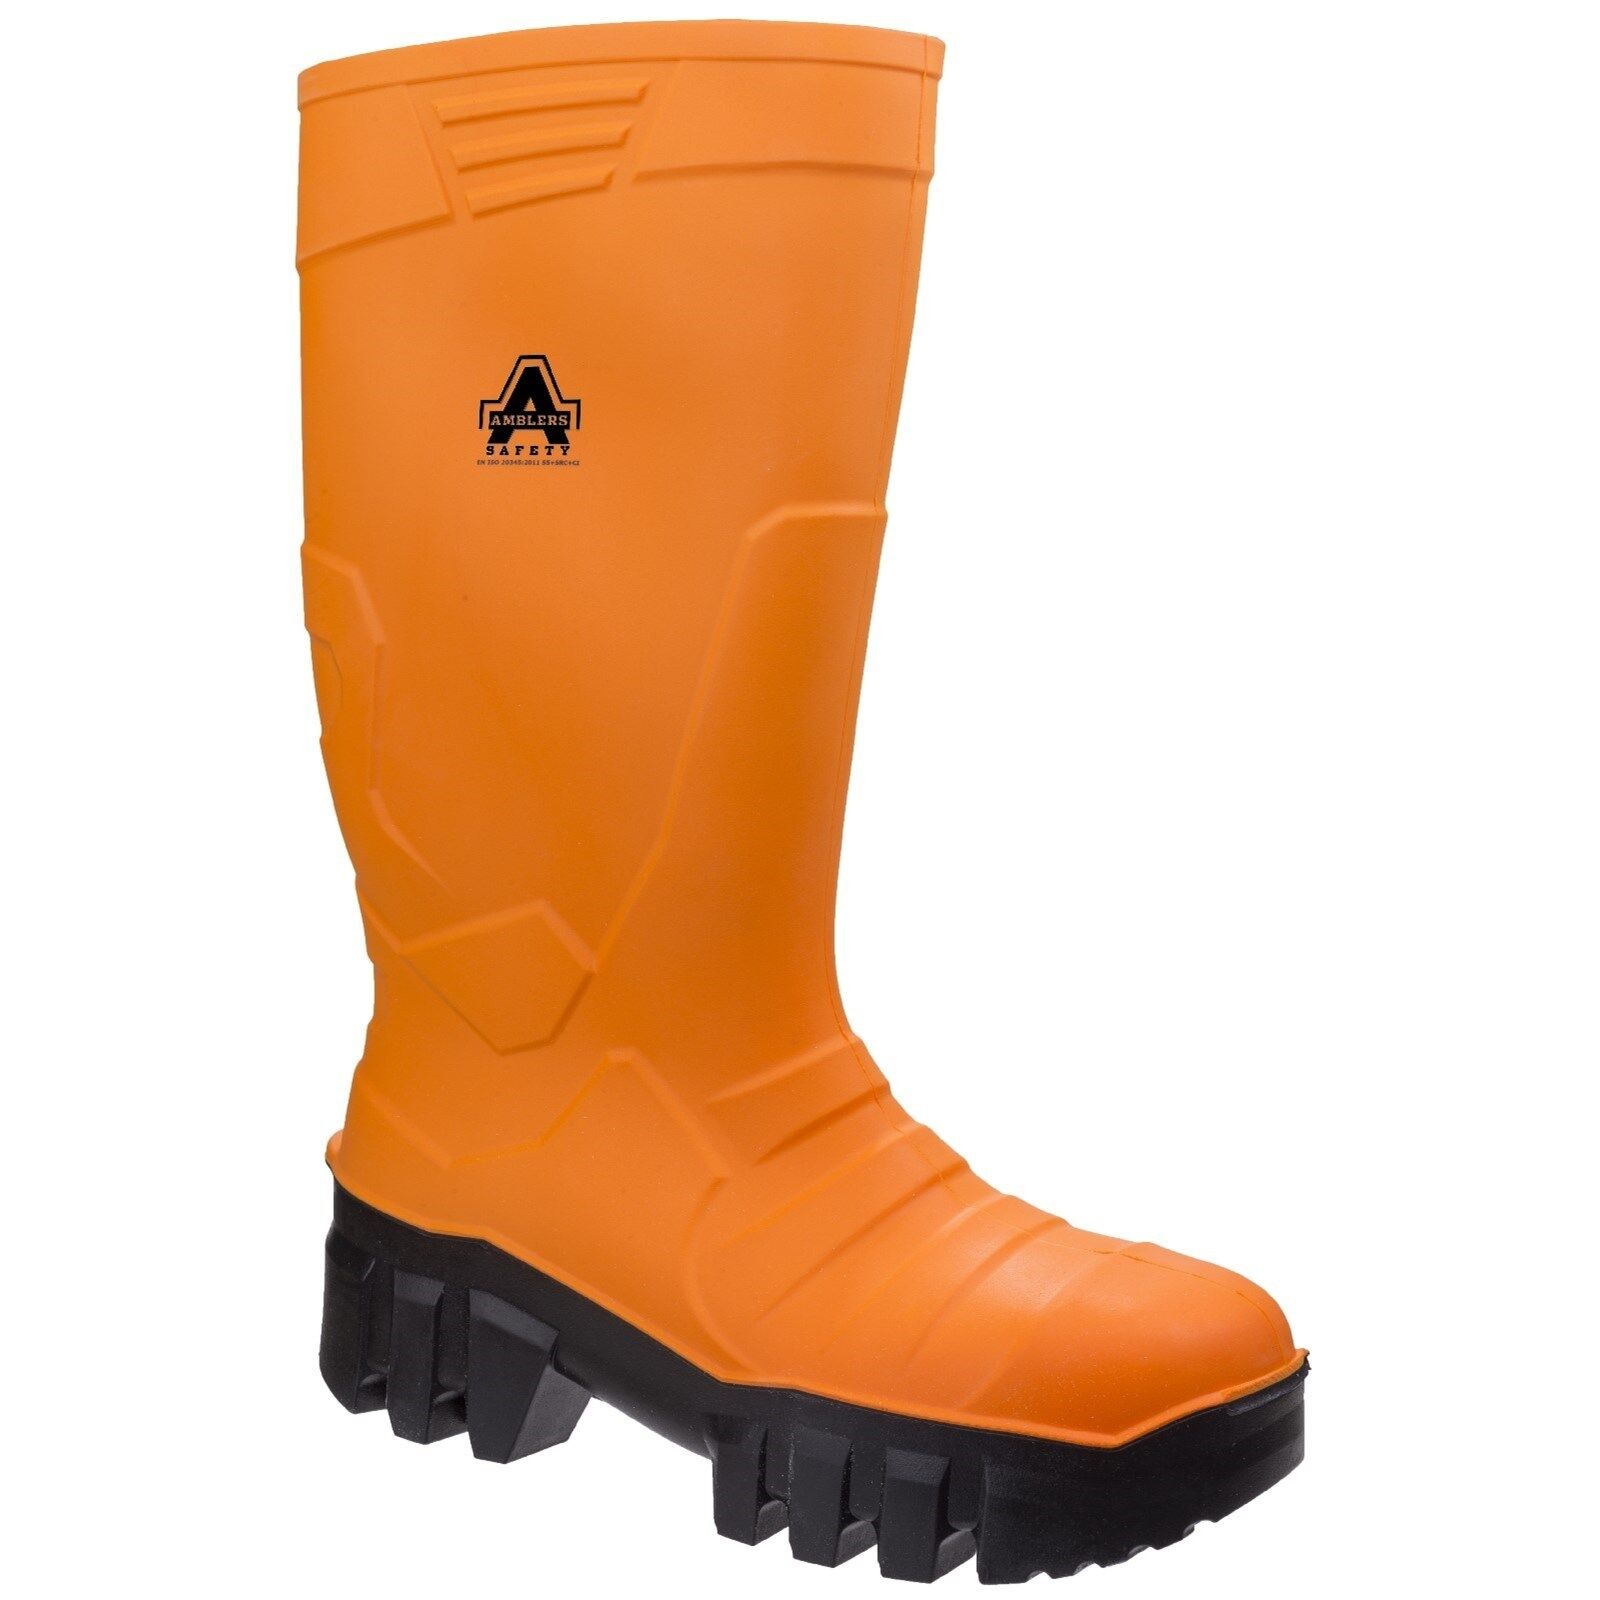 Amblers AS1010 Safety Wellingtons Mens S5 Steel Toe Cap Thermal -20 Work Stiefel